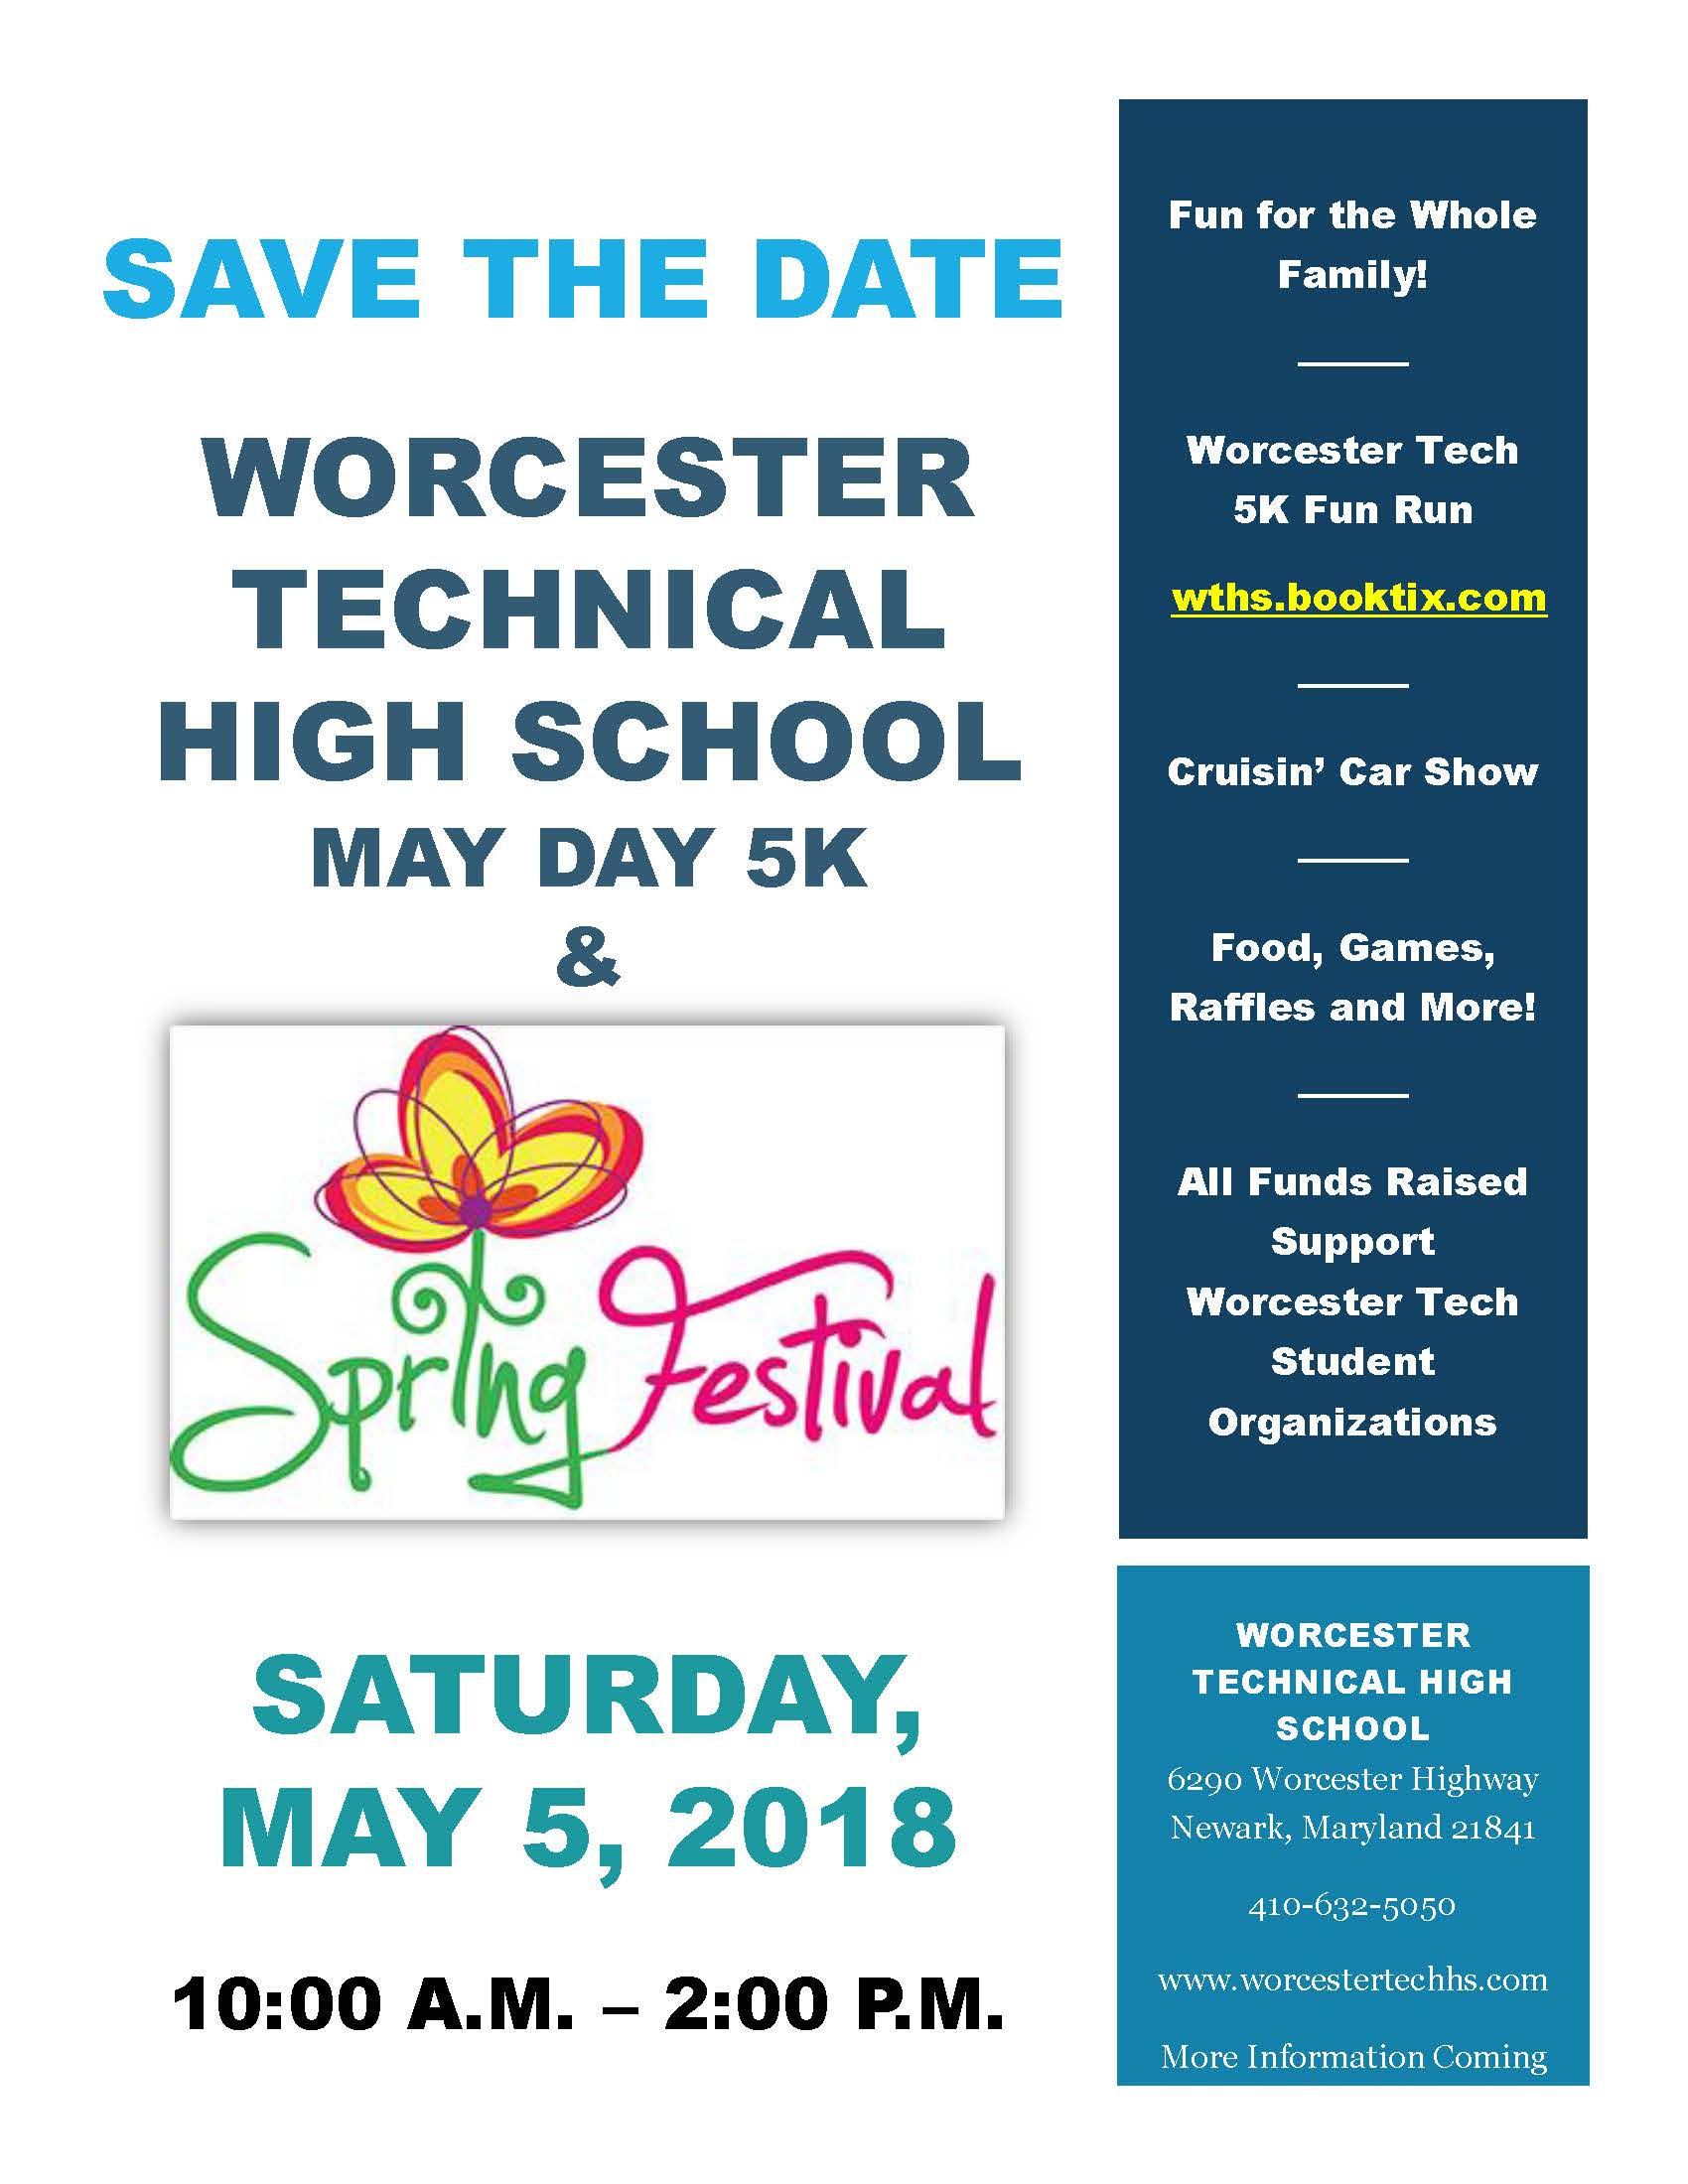 spring festival 2018 save the date flyer worcester technical high